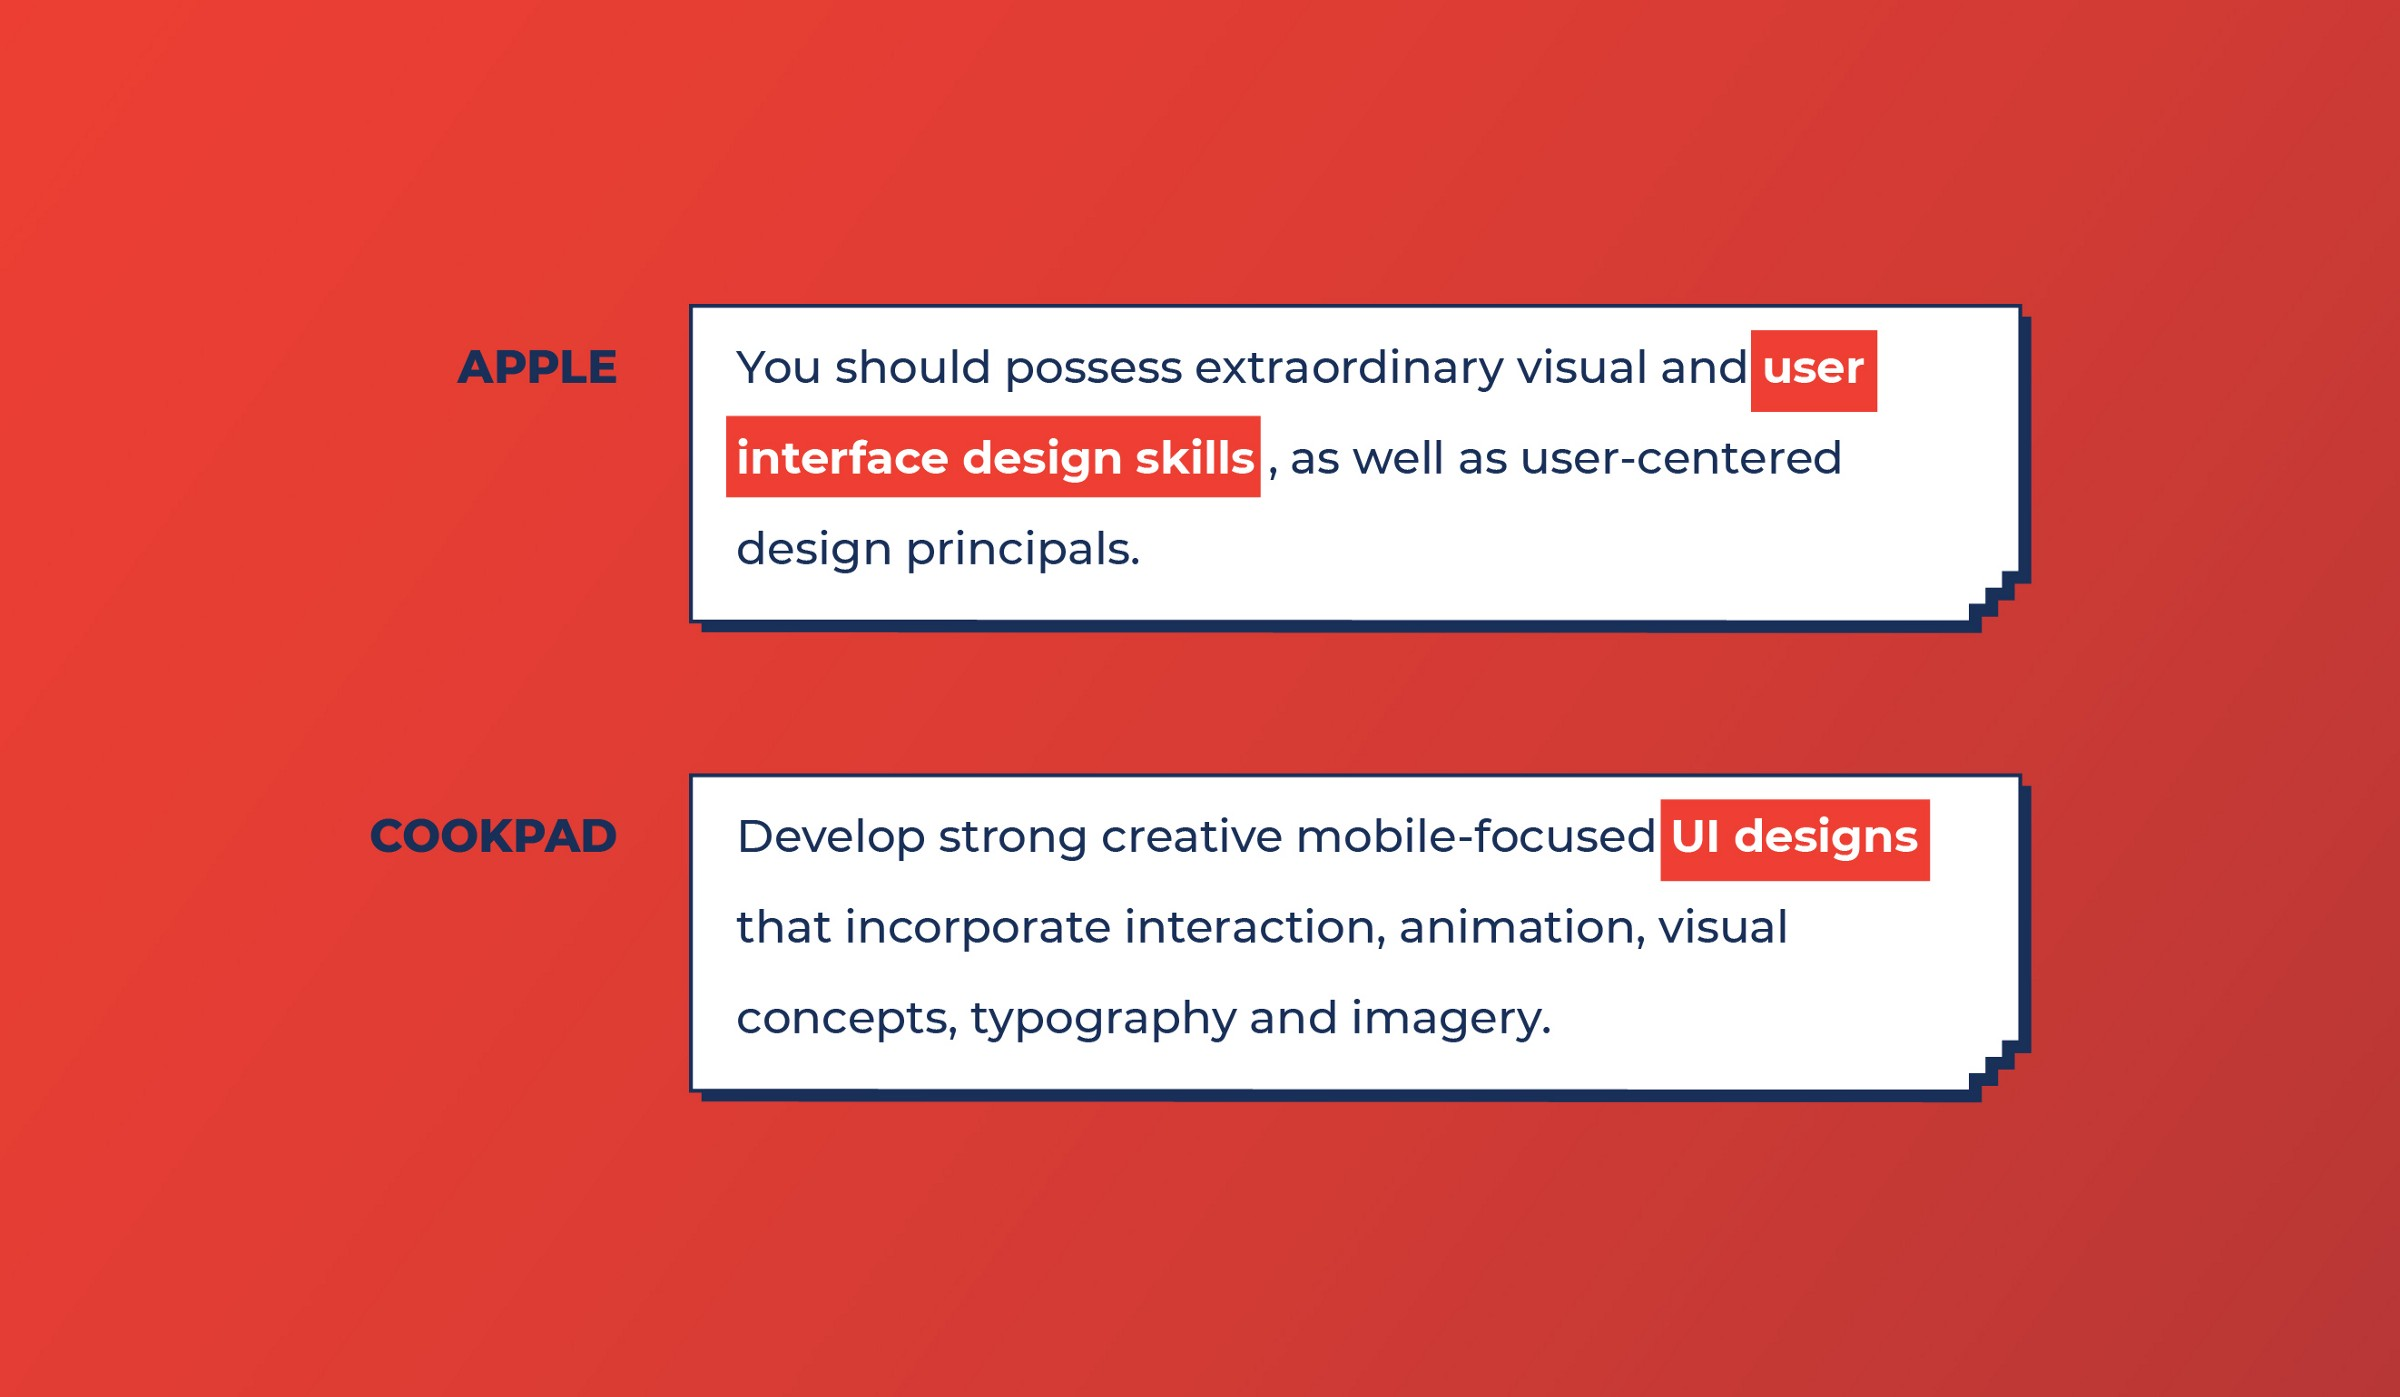 Apple and Cookpad look for UI work from Product designers